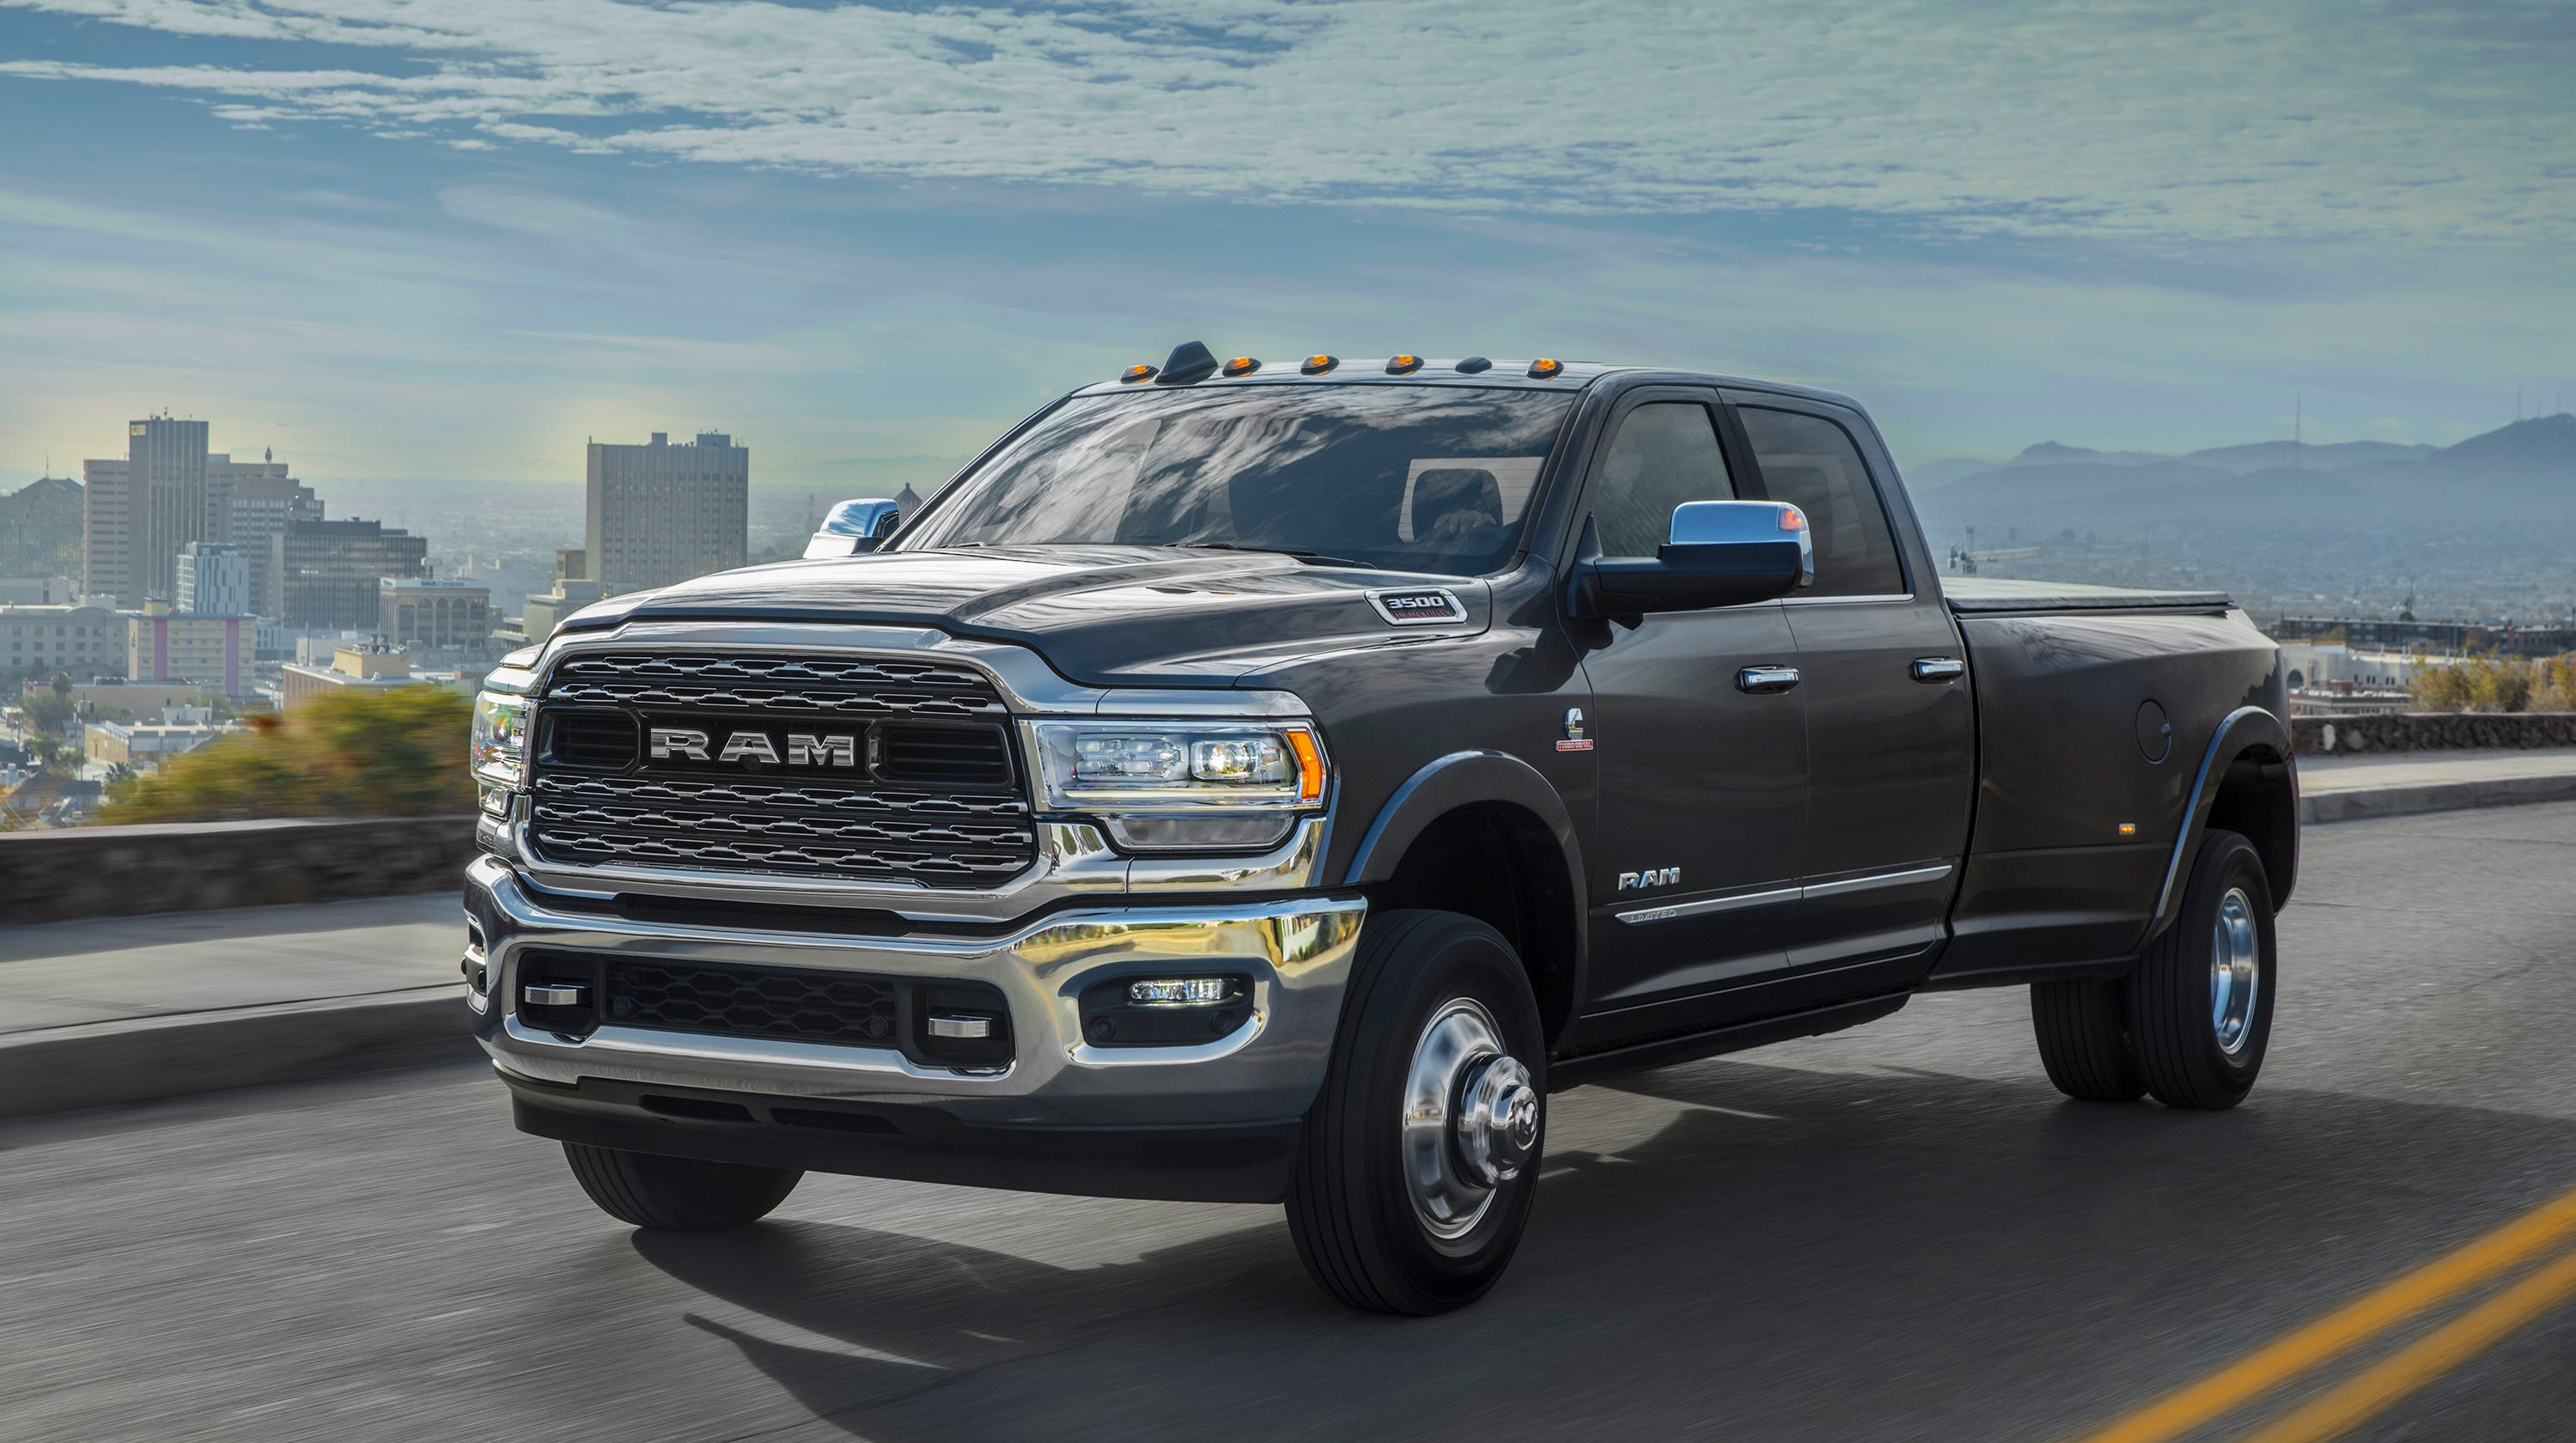 Ram 2500 And 3500 Heavy Duty Trucks Debut At Detroit Auto Show